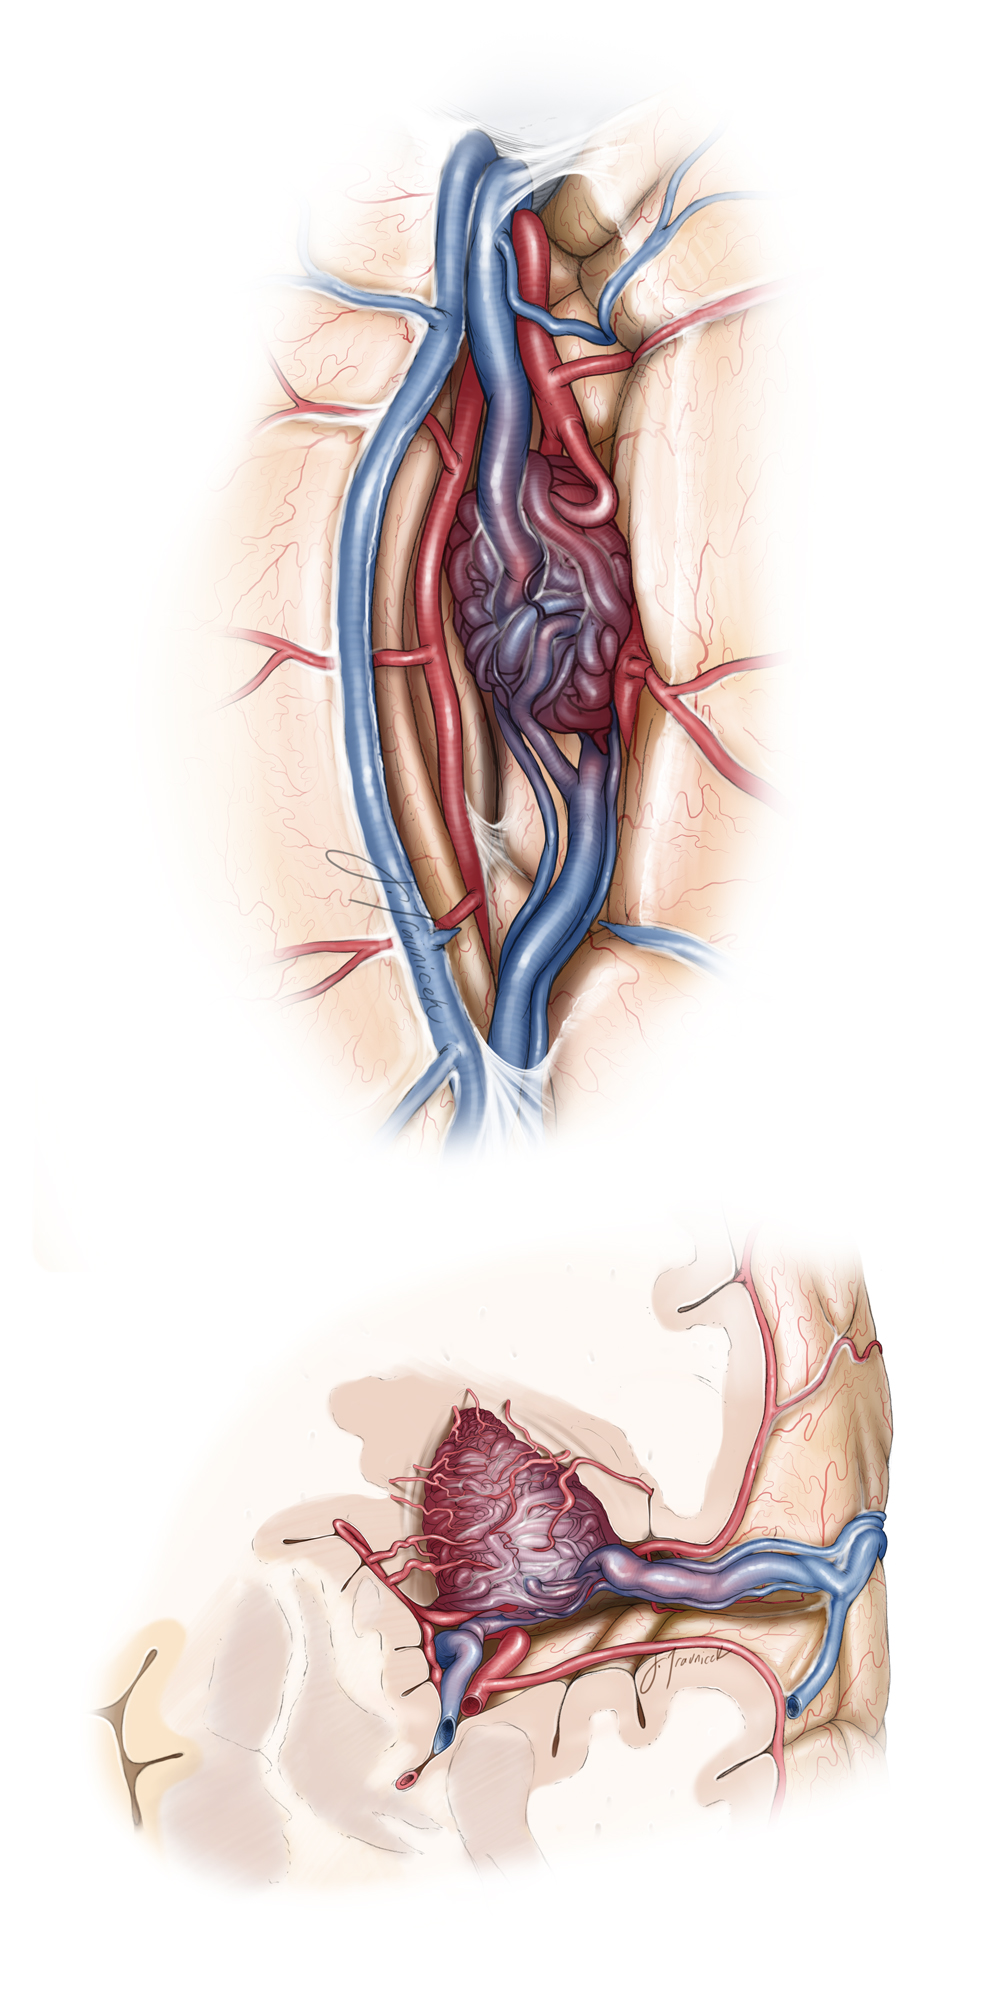 Figure 18: The vascular anatomy of a Sylvian frontal AVM is demonstrated. Please note the relationship of the malformation to the MCA (M2 and M3) branches. Transit or bystander vessels must be recognized from feeding vessels (surgeon's view, top). The superficial Sylvian veins participate in the drainage system of the AVM and are protected during the fissure split. These veins can tether down the the frontal lobe to the temporal lobe and limit the flexibility of the required operative corridors. The anatomy of the malformation is further dissected in a coronal image (bottom illustration).